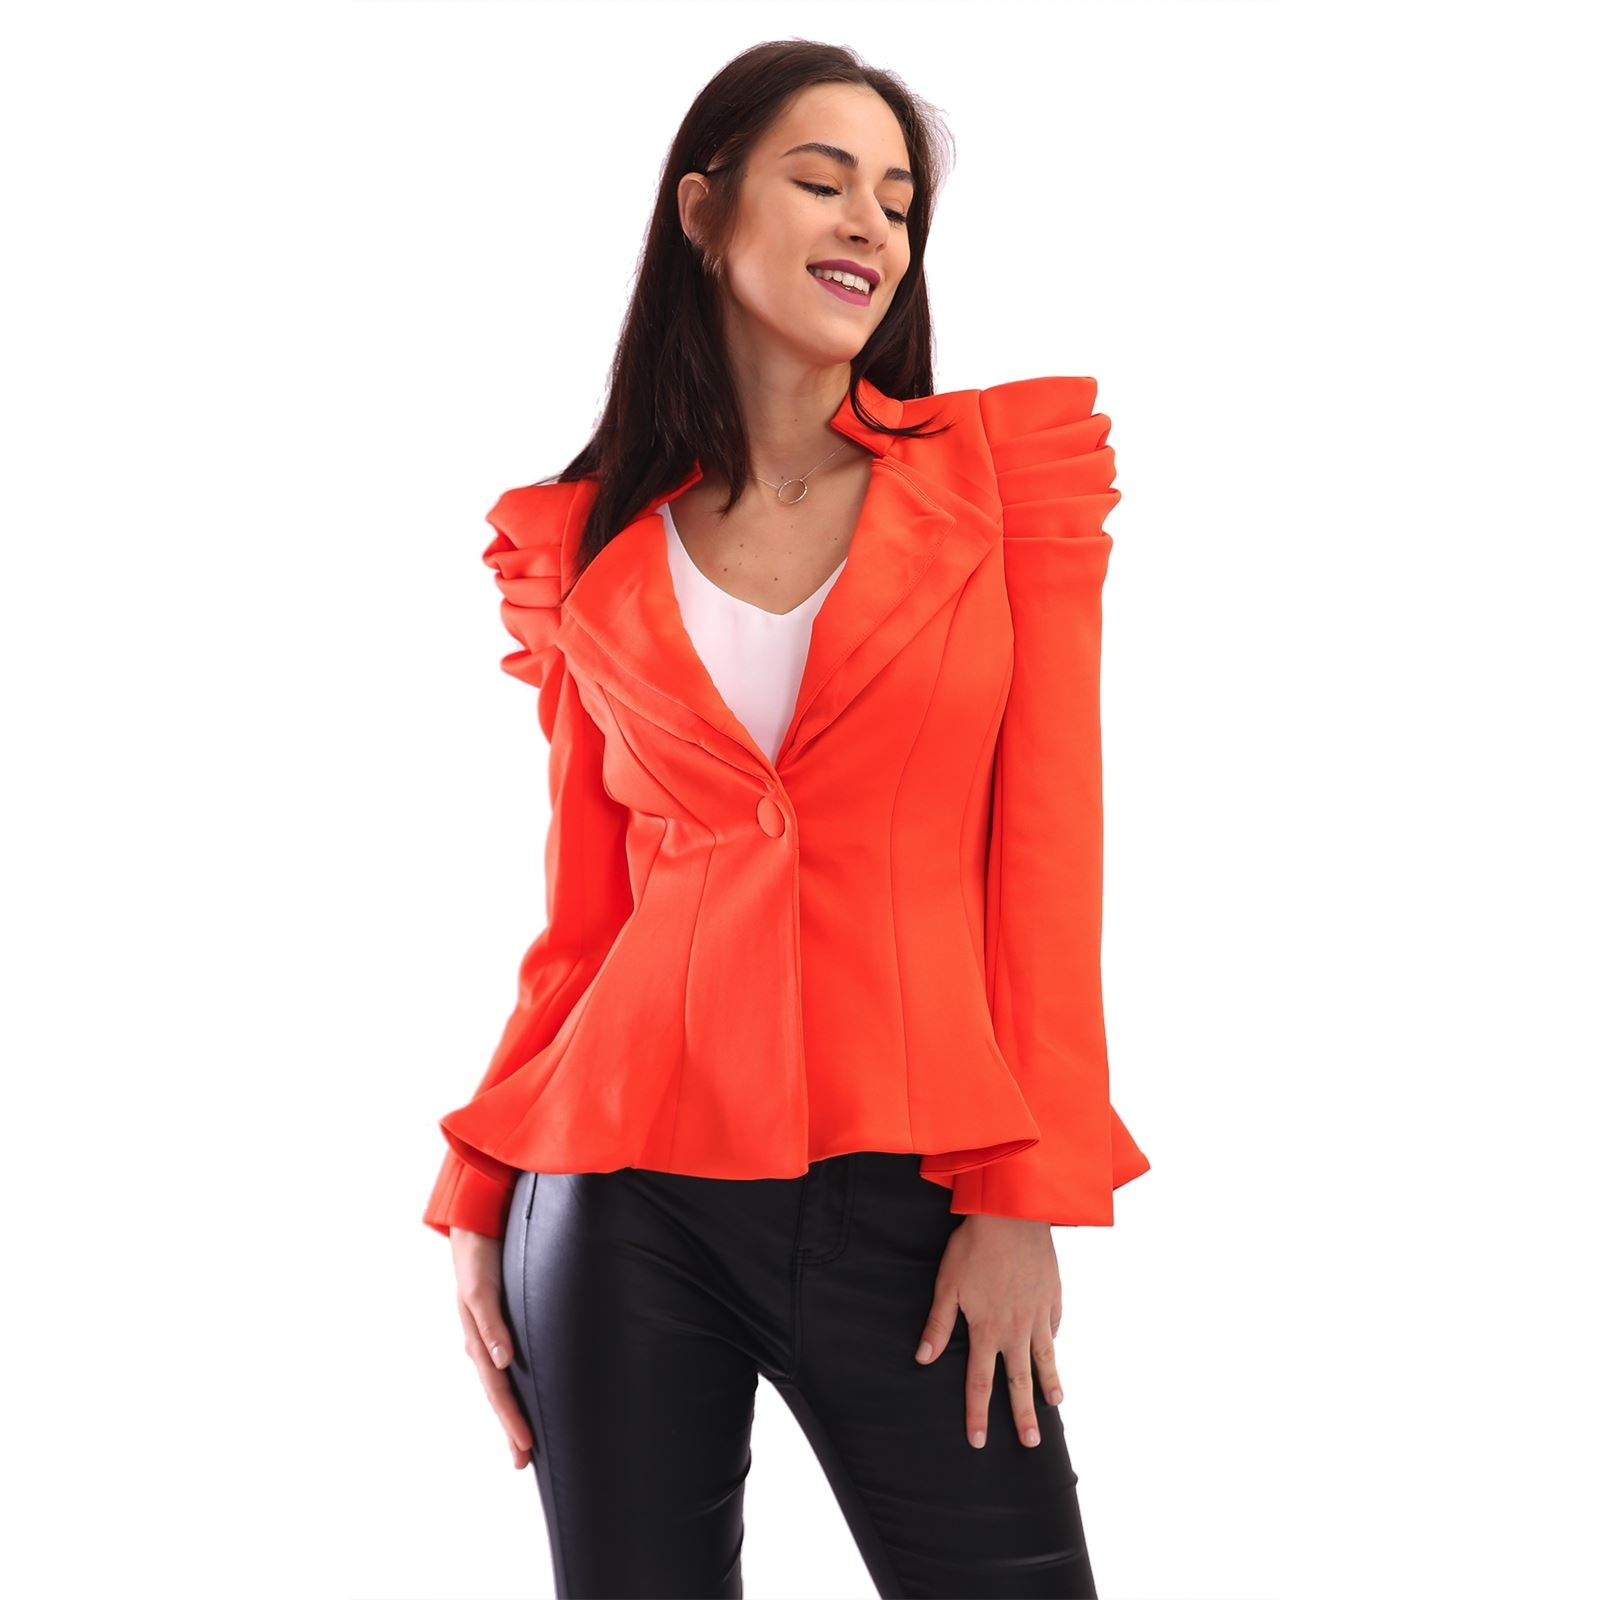 Find Puff Sleeve Jackets at ShopStyle. Shop the latest collection of Puff Sleeve Jackets from the most popular stores - all in one place.